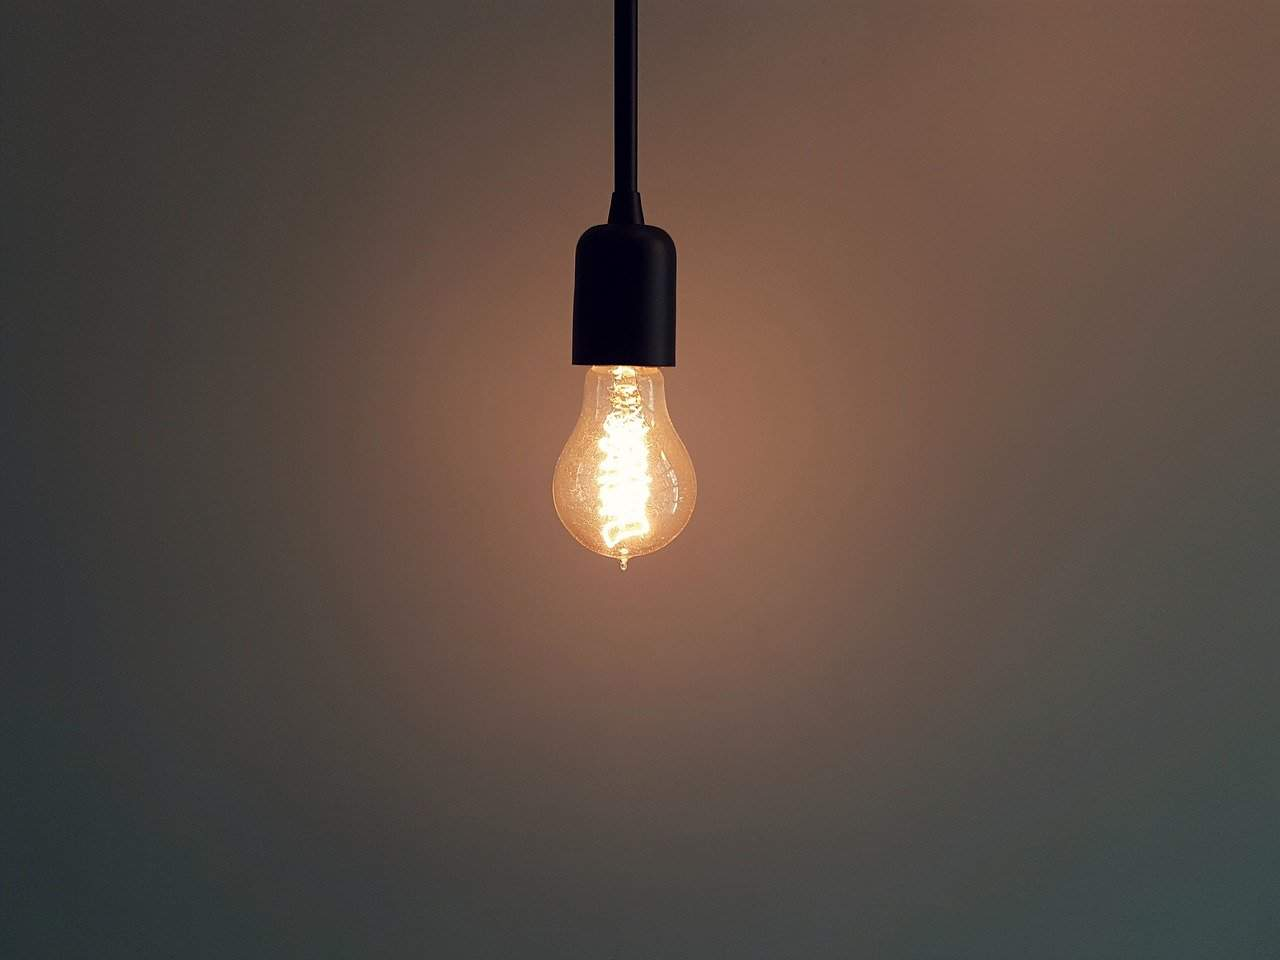 shed-into-hobby-room-5-light-it-up-pixabay